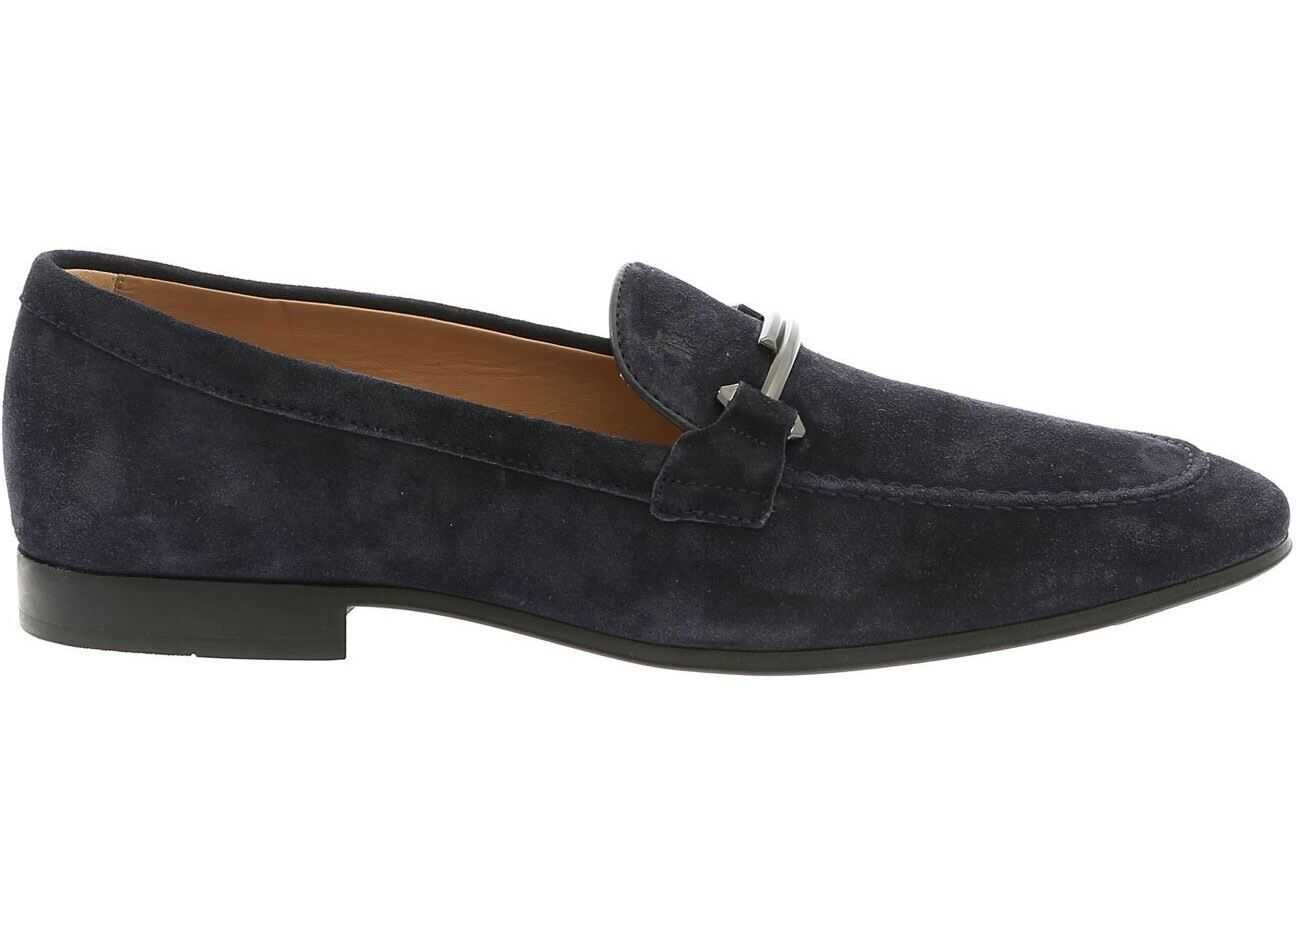 TOD'S Double T Logo Loafers In Blue Suede XXM06B0Z250BYEU824 Blue imagine b-mall.ro